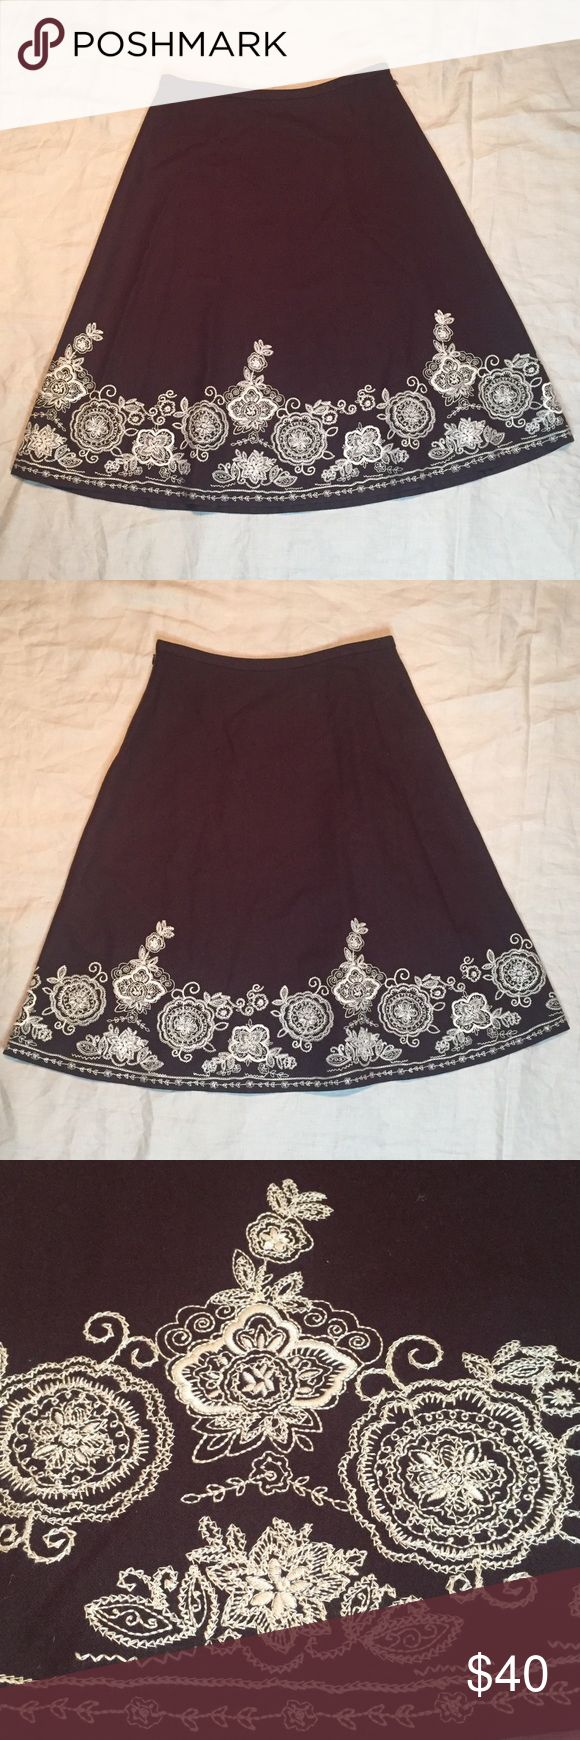 """Boden brown wool blend embroidered midi skirt 14L Chocolate brown Boden wool blend a-line midi skirt with gorgeously embroidered hemline! 😍 Size 14L; waist - 16.5""""; hips - 24""""; length - 28.5"""" Boden Skirts Midi"""